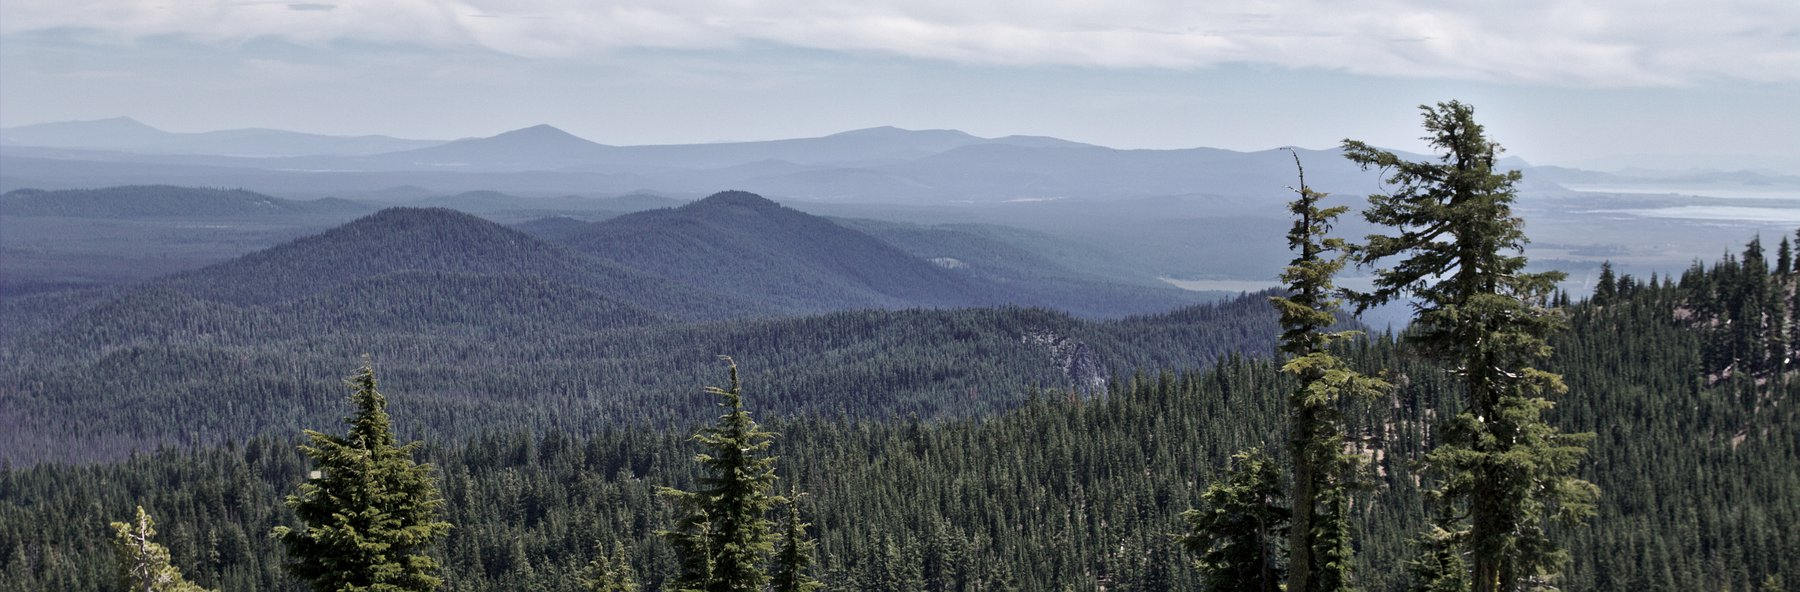 forest-view-oregon_01